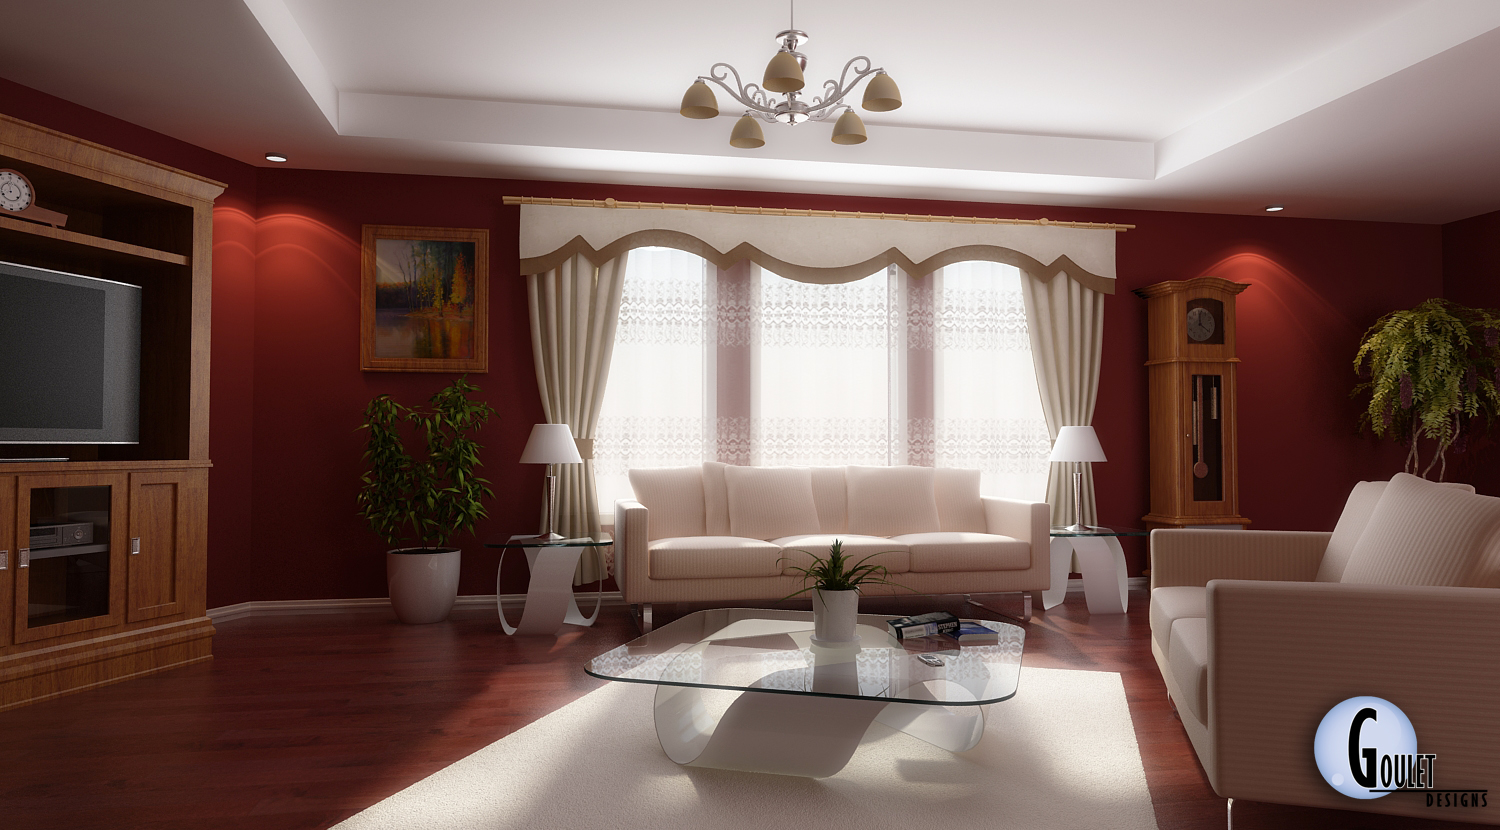 Red and white living room design living room walls choosing paint colors for living room walls